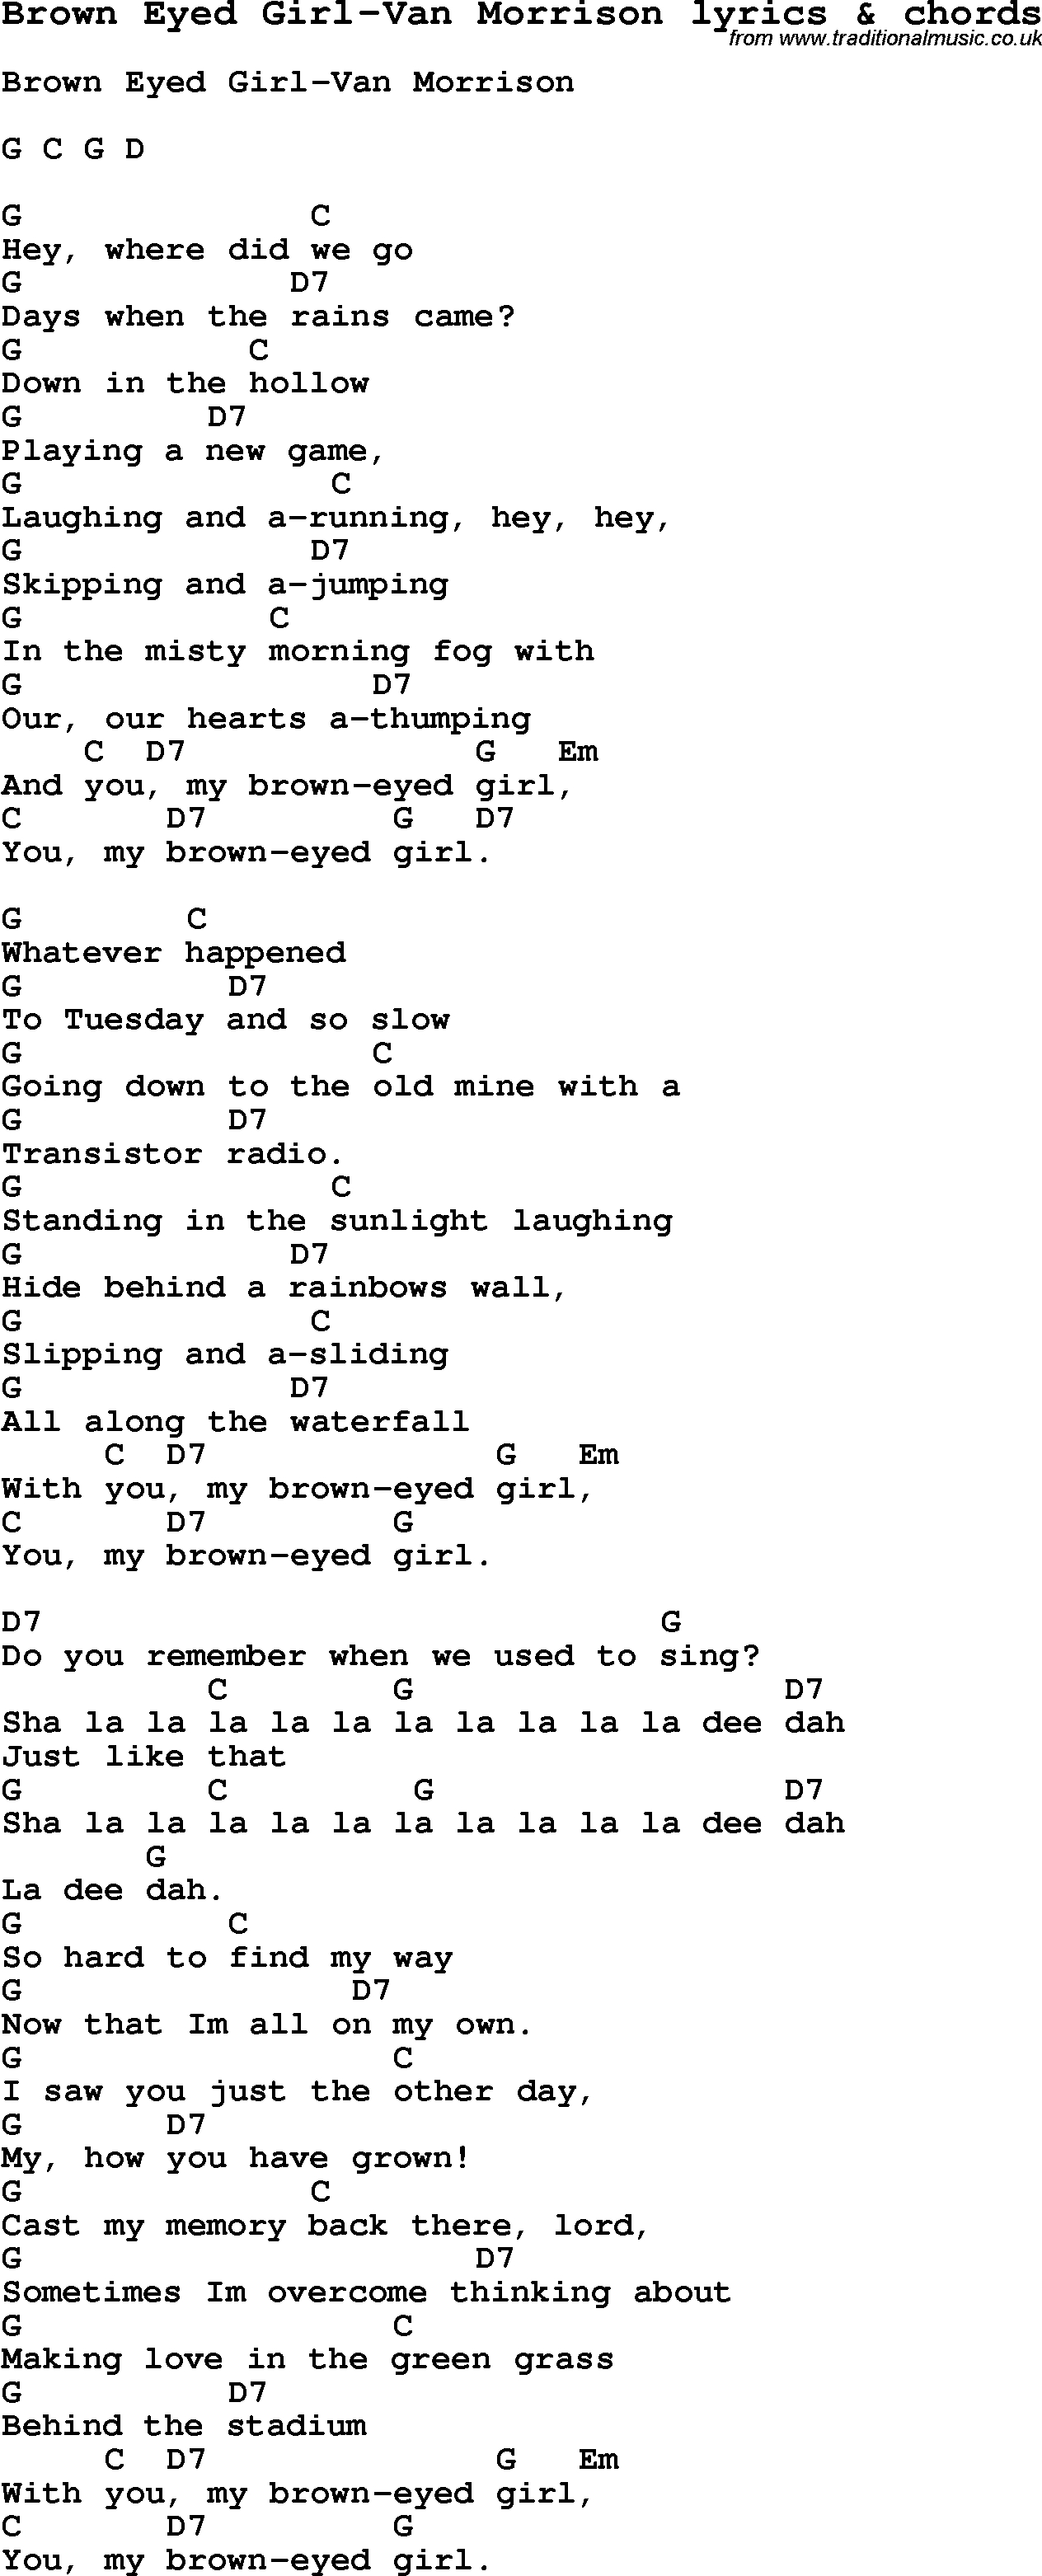 Brown Eyed Girl Chords Love Song Lyrics Forbrown Eyed Girl Van Morrison With Chords